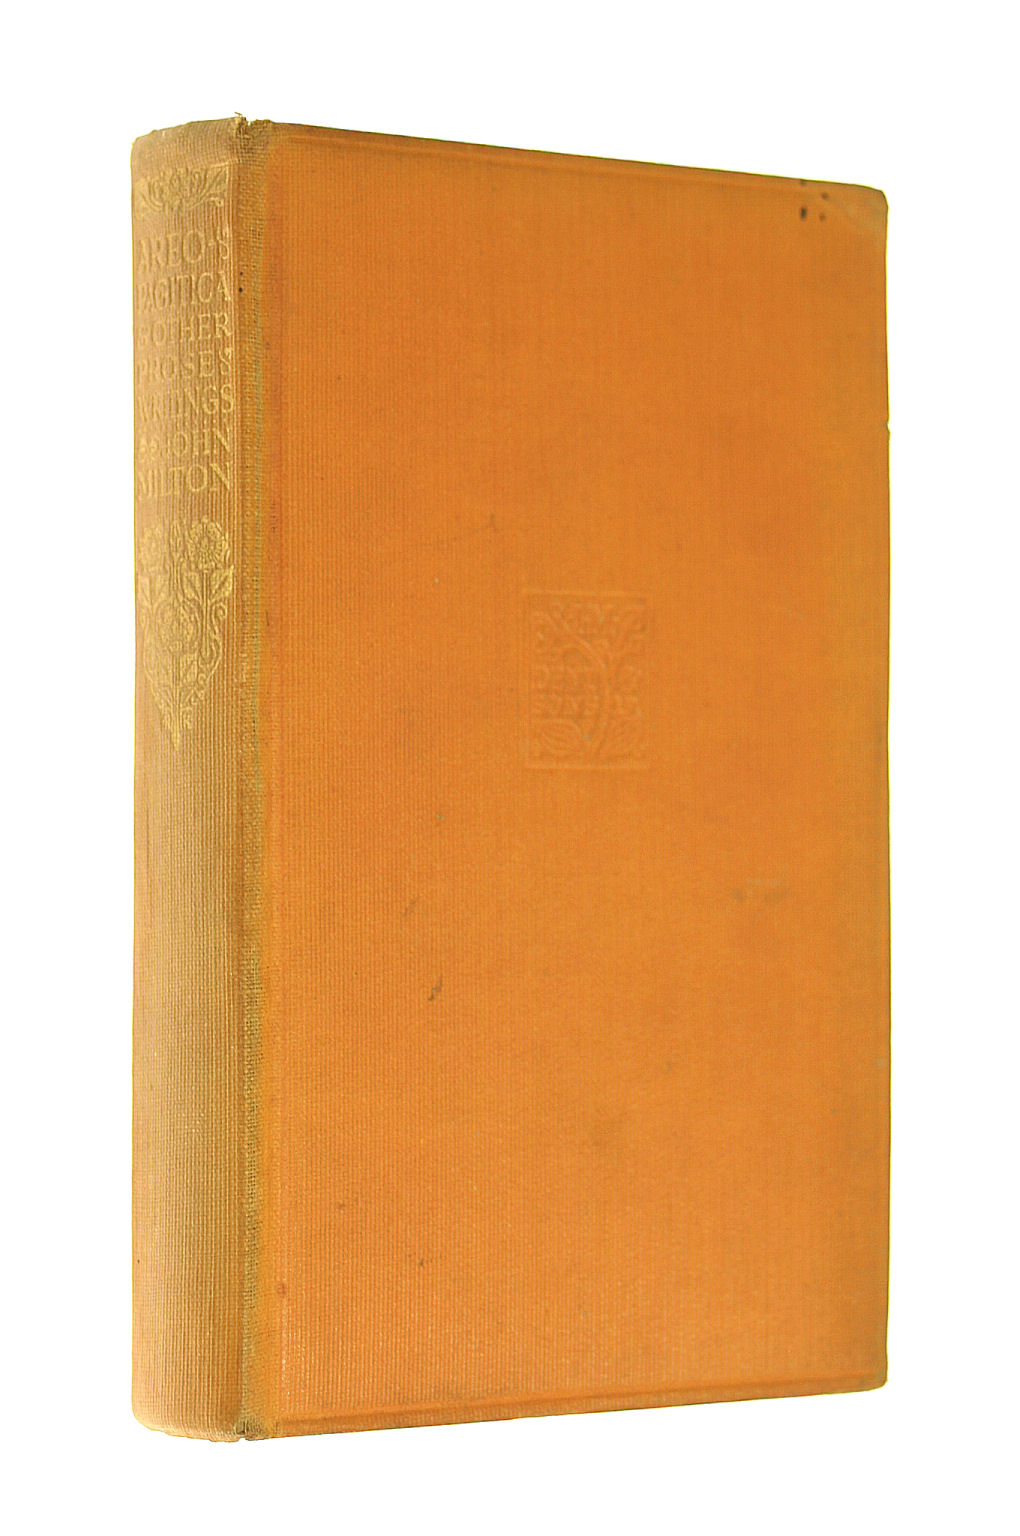 Image for Areopagitica,and other prose works,  introduction by Prof. C. E. Vaughan,  Everyman's Library Series 795